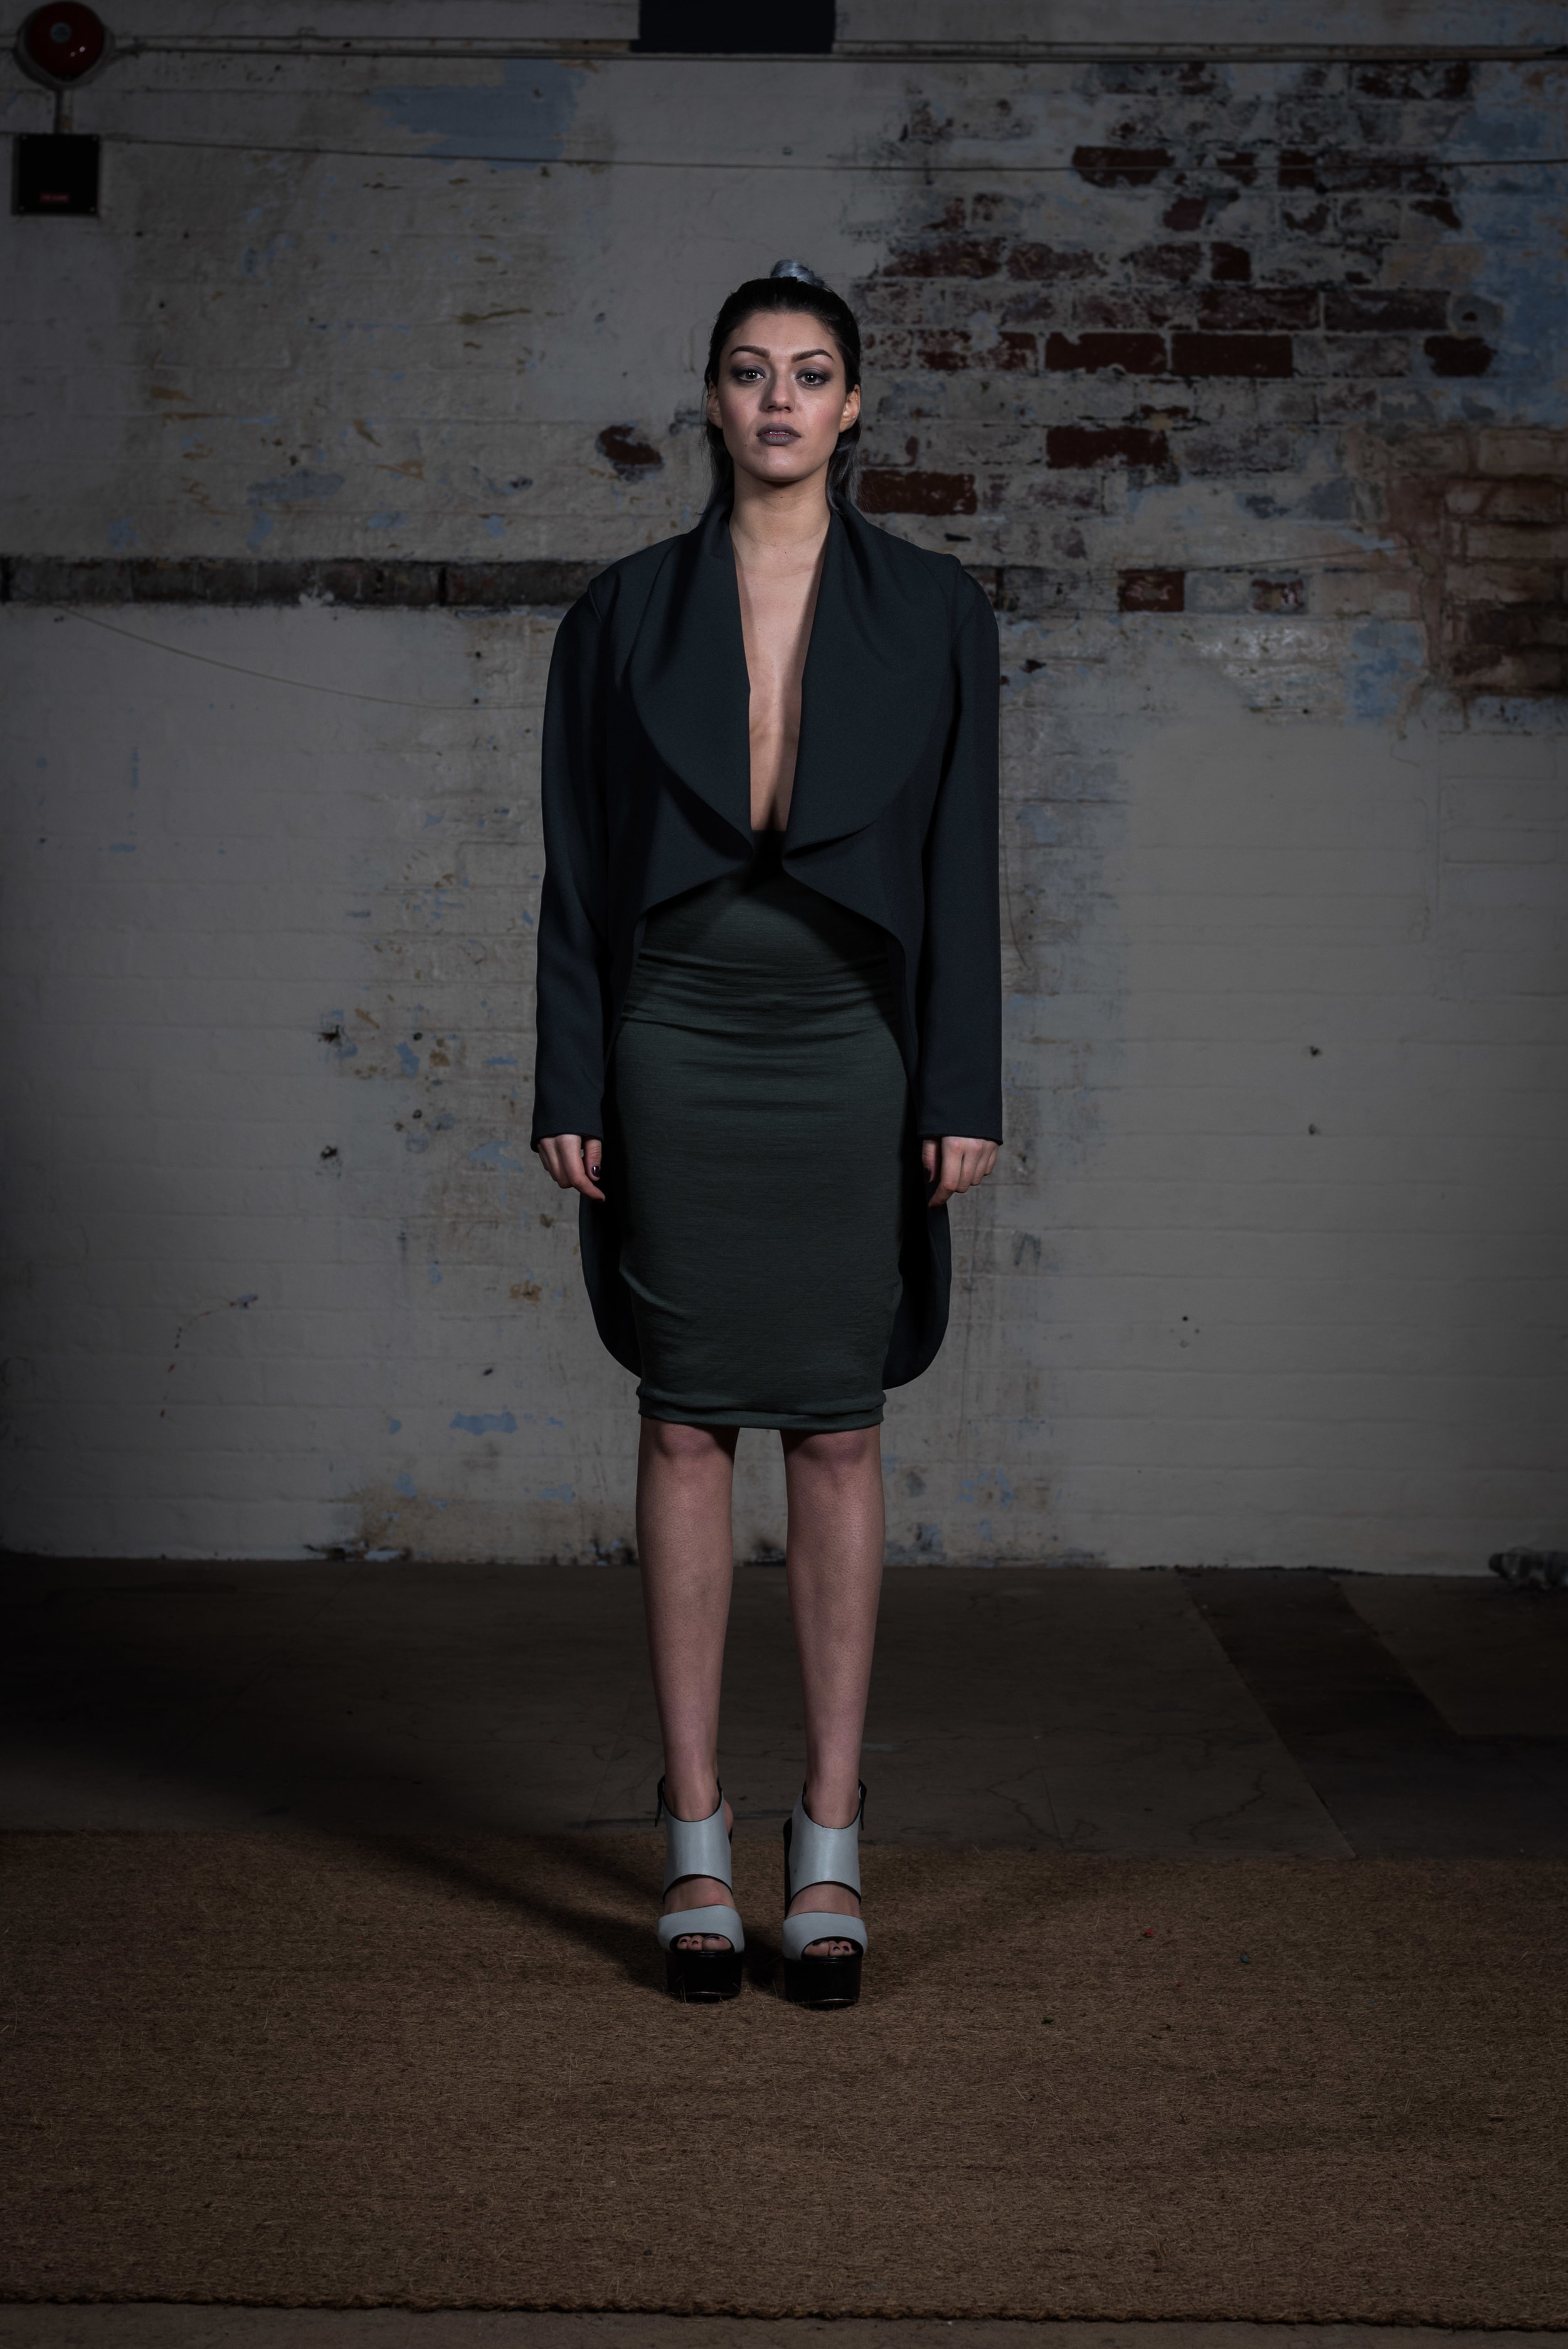 zaramia-ava-zaramiaava-leeds-fashion-designer-ethical-sustainable-yuo-tailored-minimalist-jacket-dress-versatile-drape-skirt-grey-yuko-cowl-dress-styling-location-womenswear-models-photoshoot-13